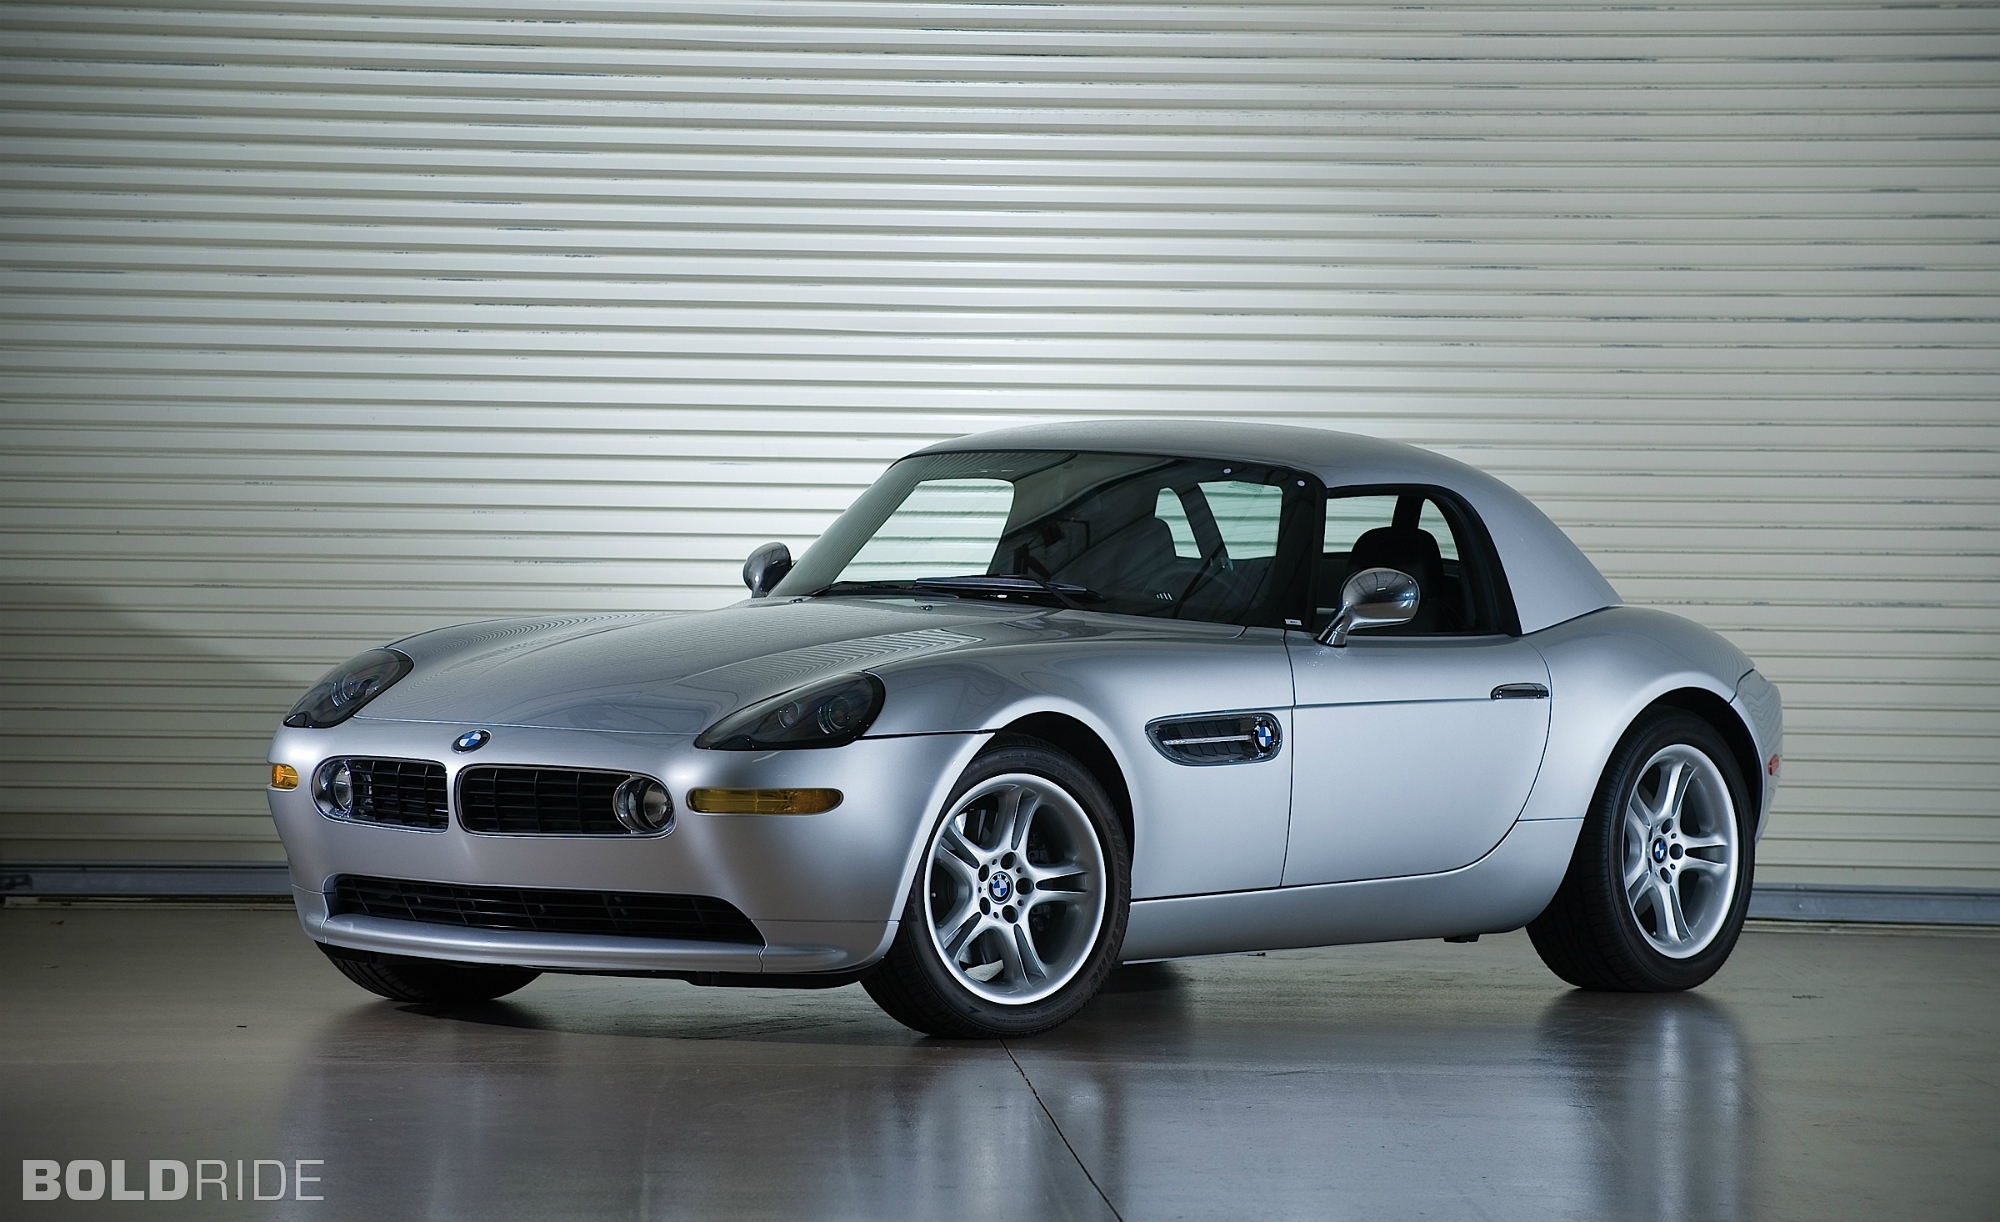 2002 Bmw Z8 Information And Photos Zombiedrive